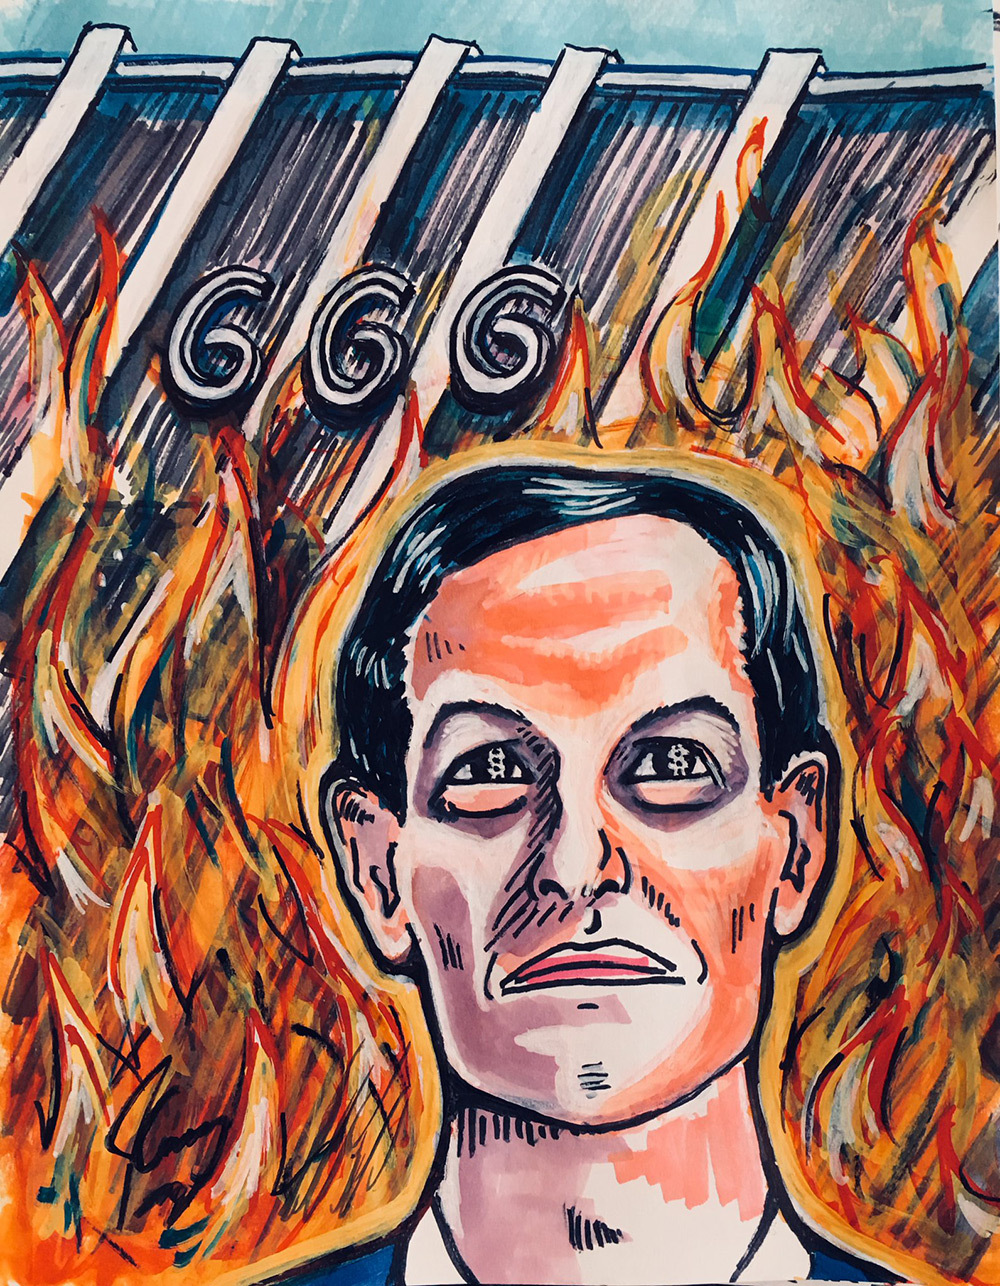 jim-carrey-painting-12.jpg